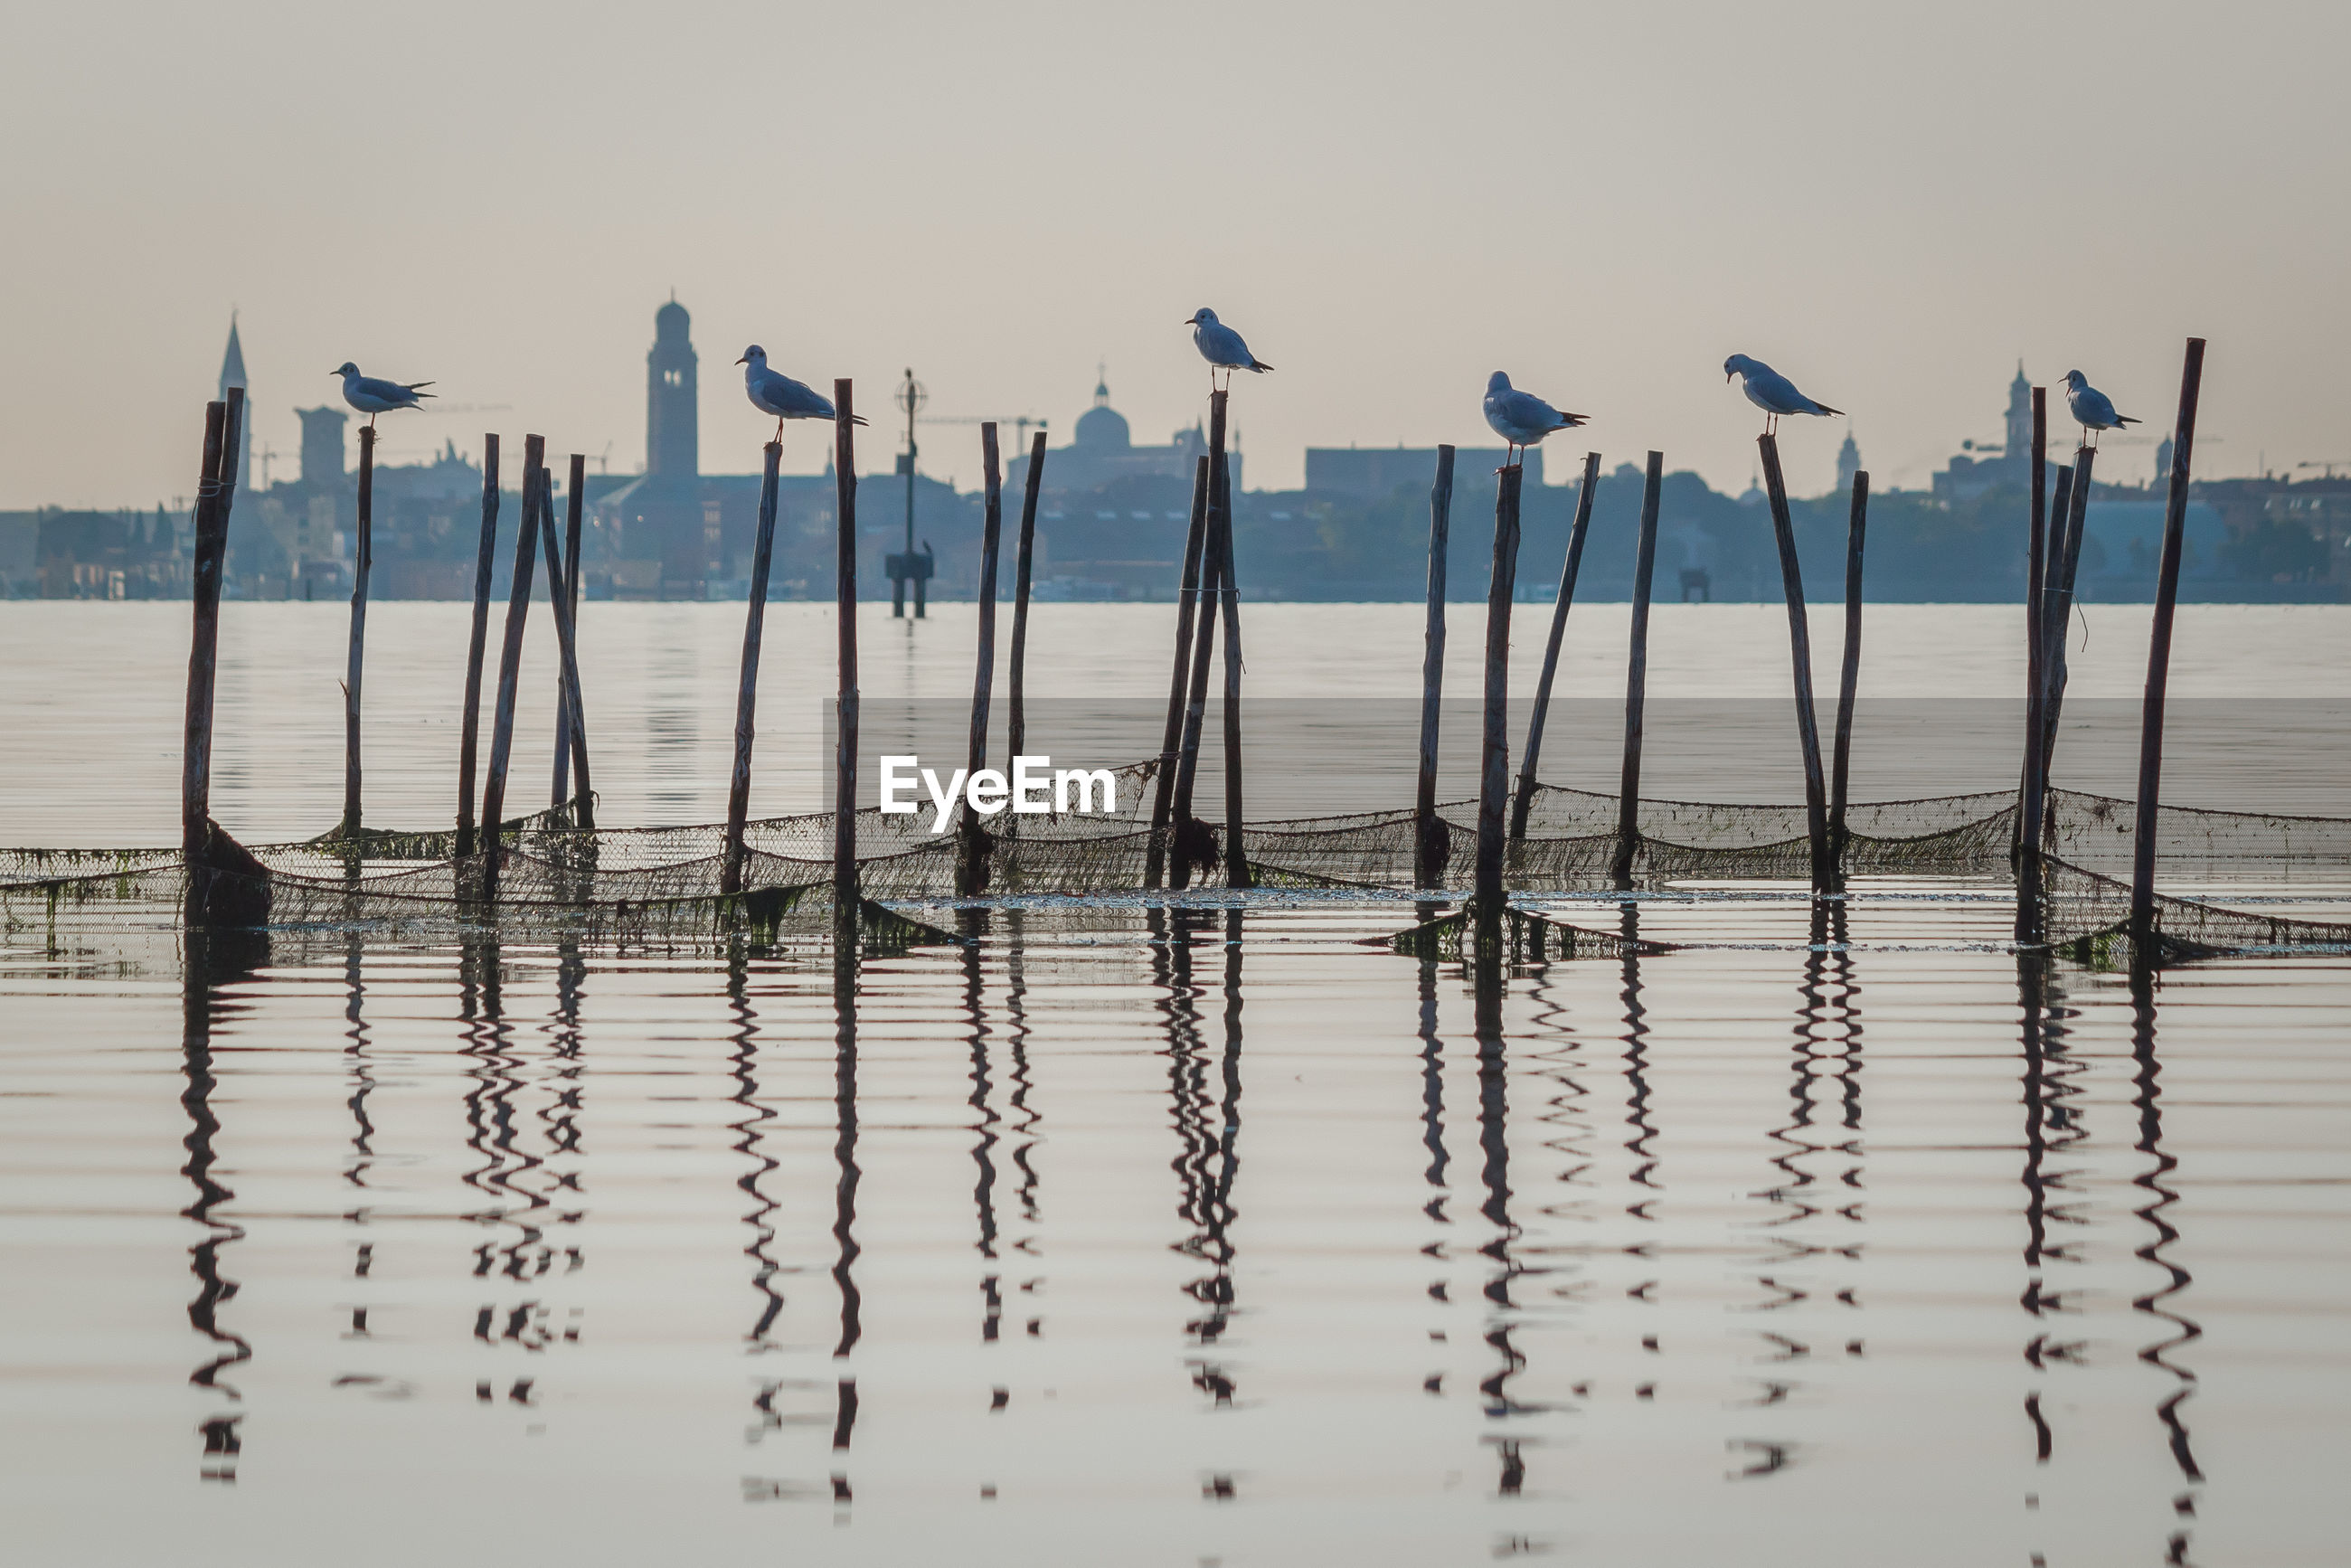 VIEW OF WOODEN POSTS IN THE SEA